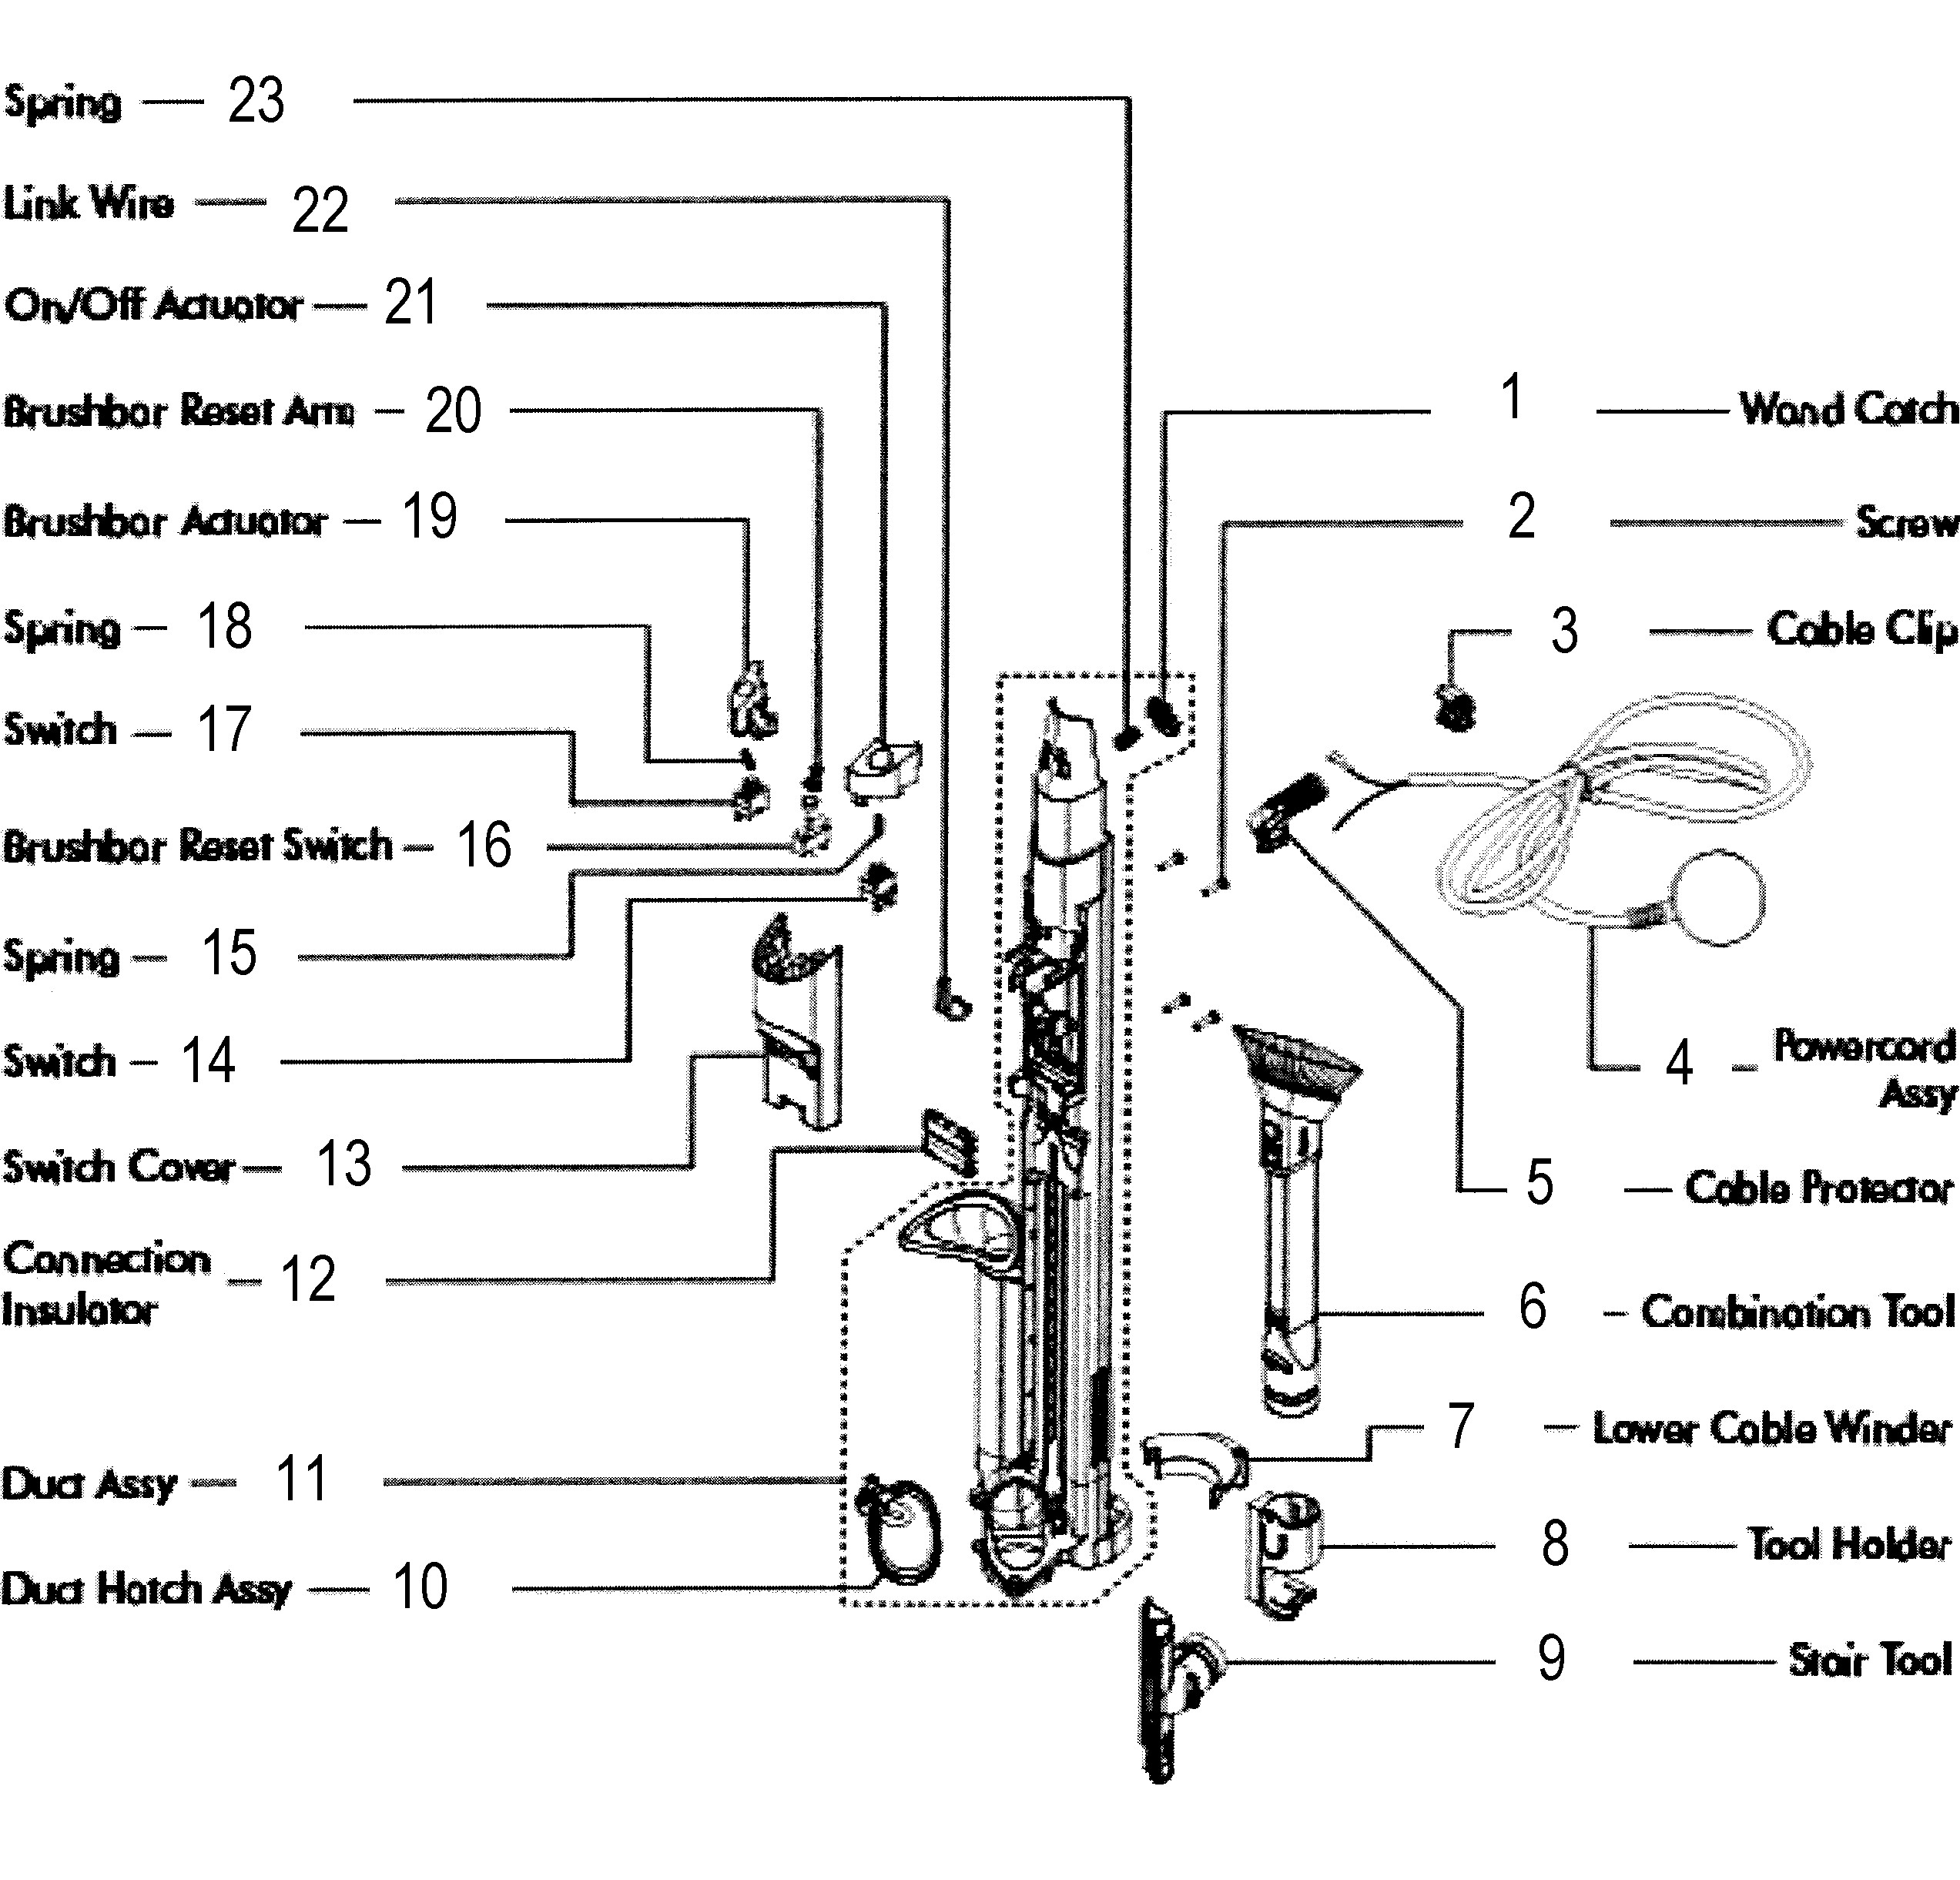 central vacuum wiring diagram get free image about wiring diagram